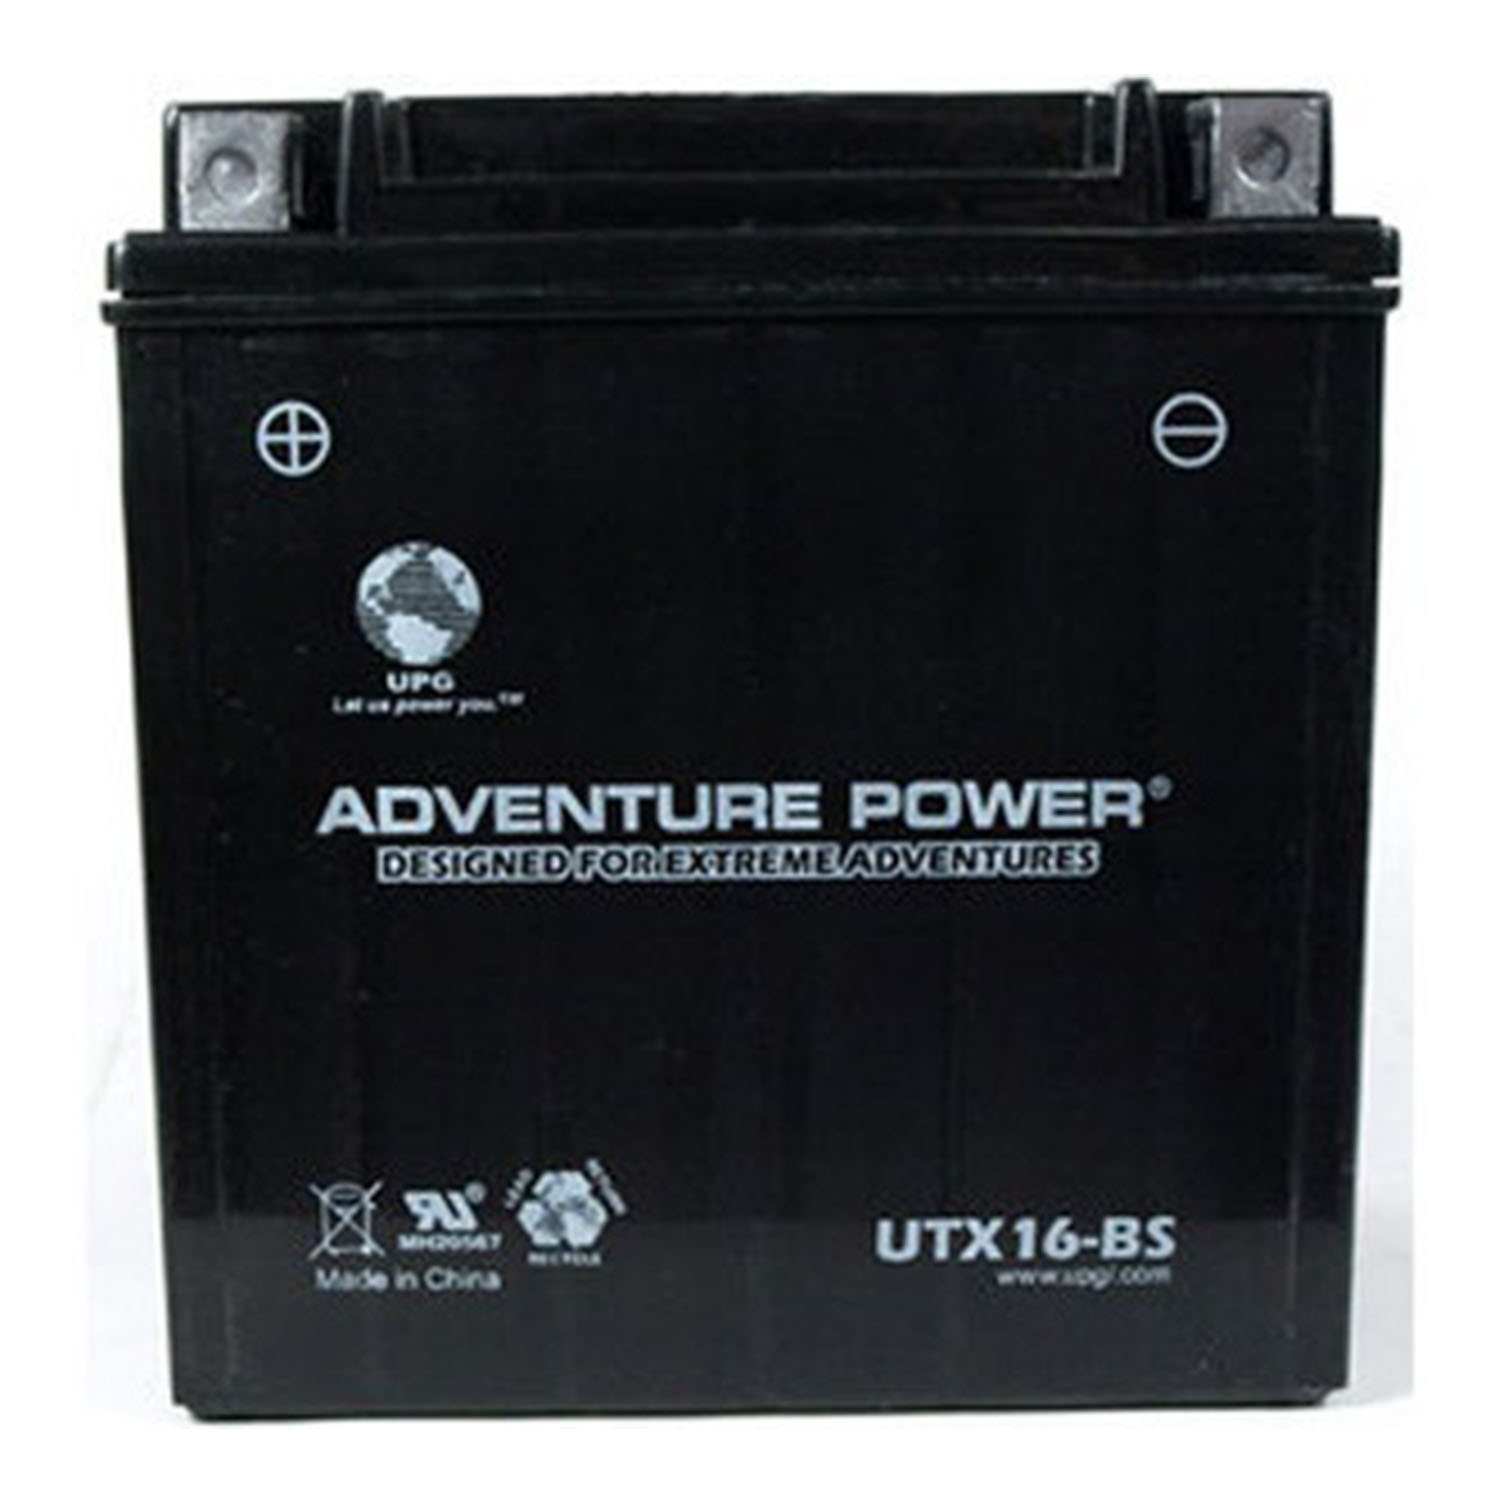 UTX16-BS 12V 14AH Battery for Kawasaki 1500 VN1500-D, E, N '96-09